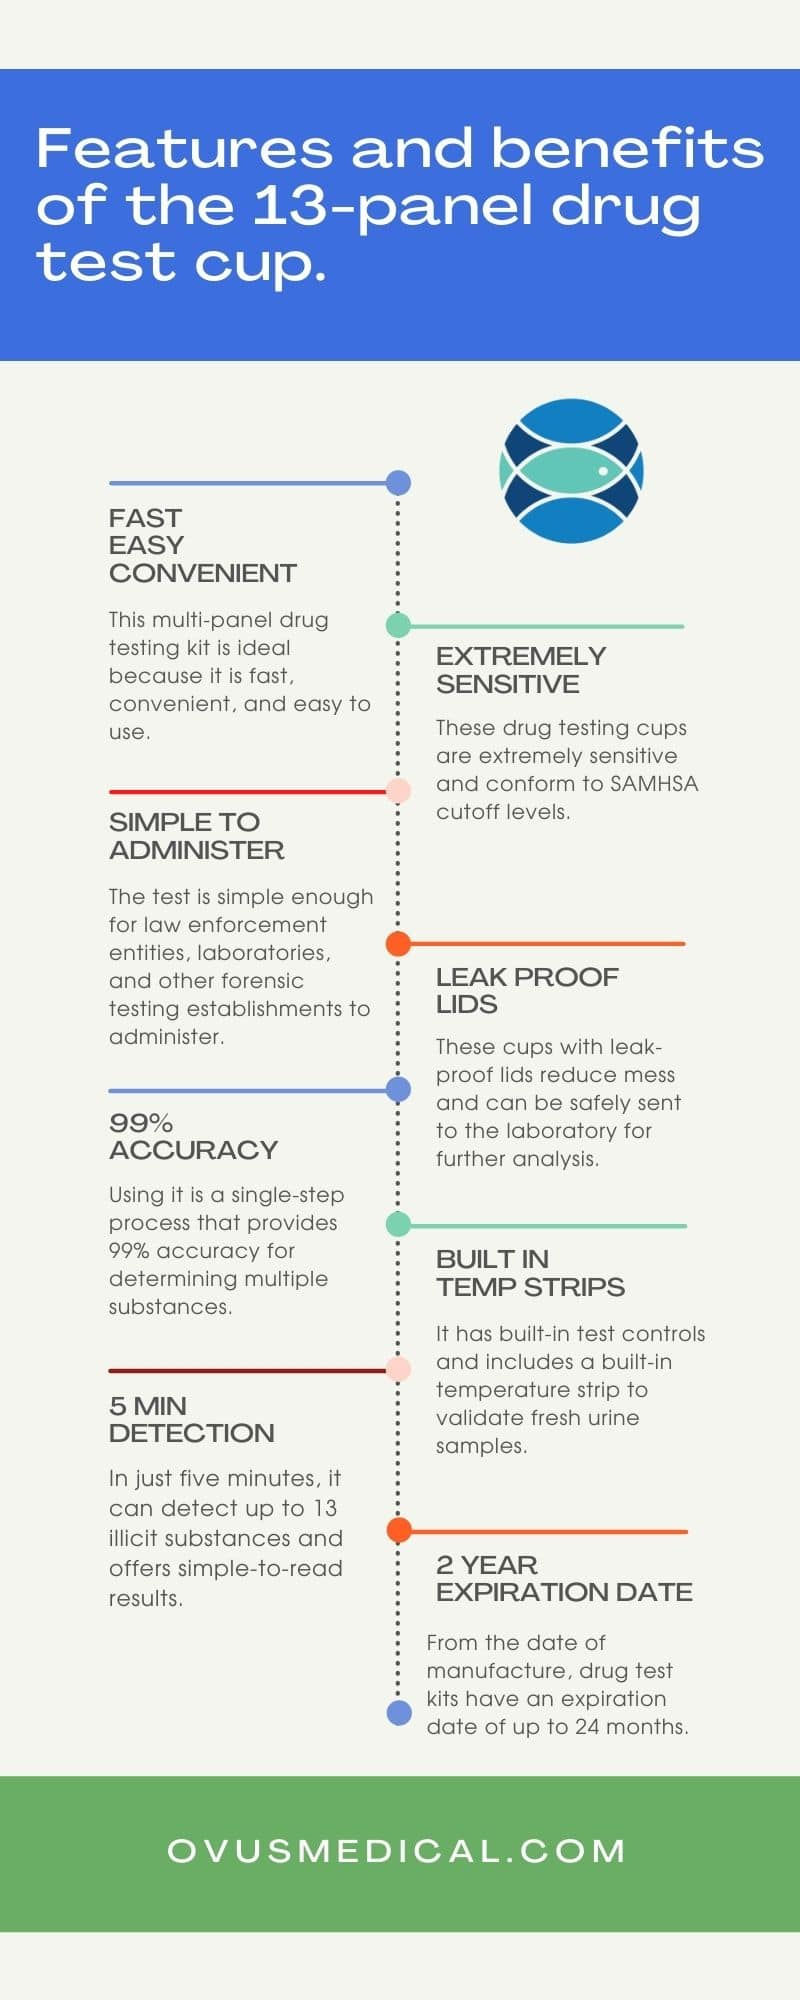 Features and benefits of the 13 panel drug test cup.